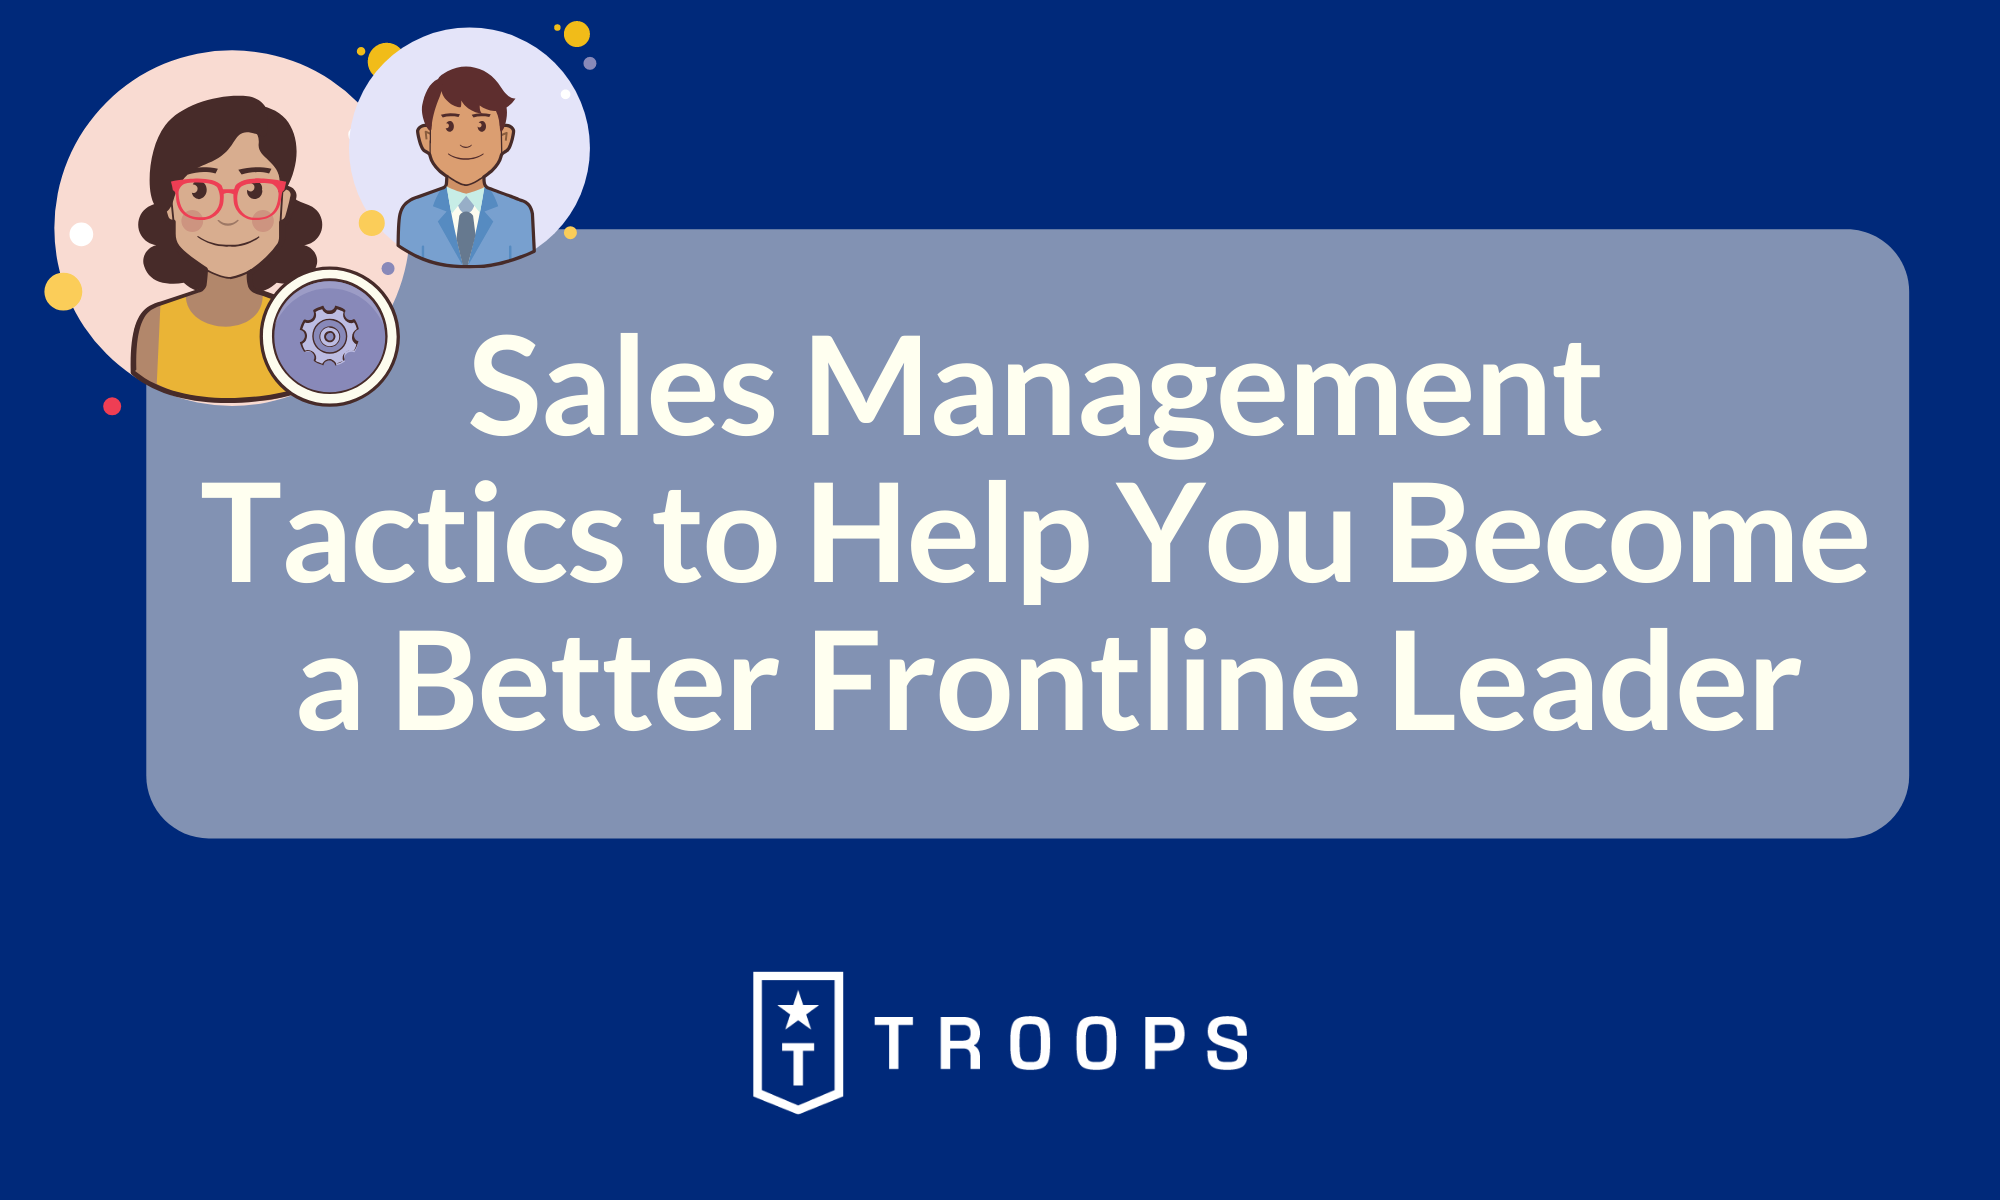 Sales Management Tactics To Help You Become a Better Frontline Leader